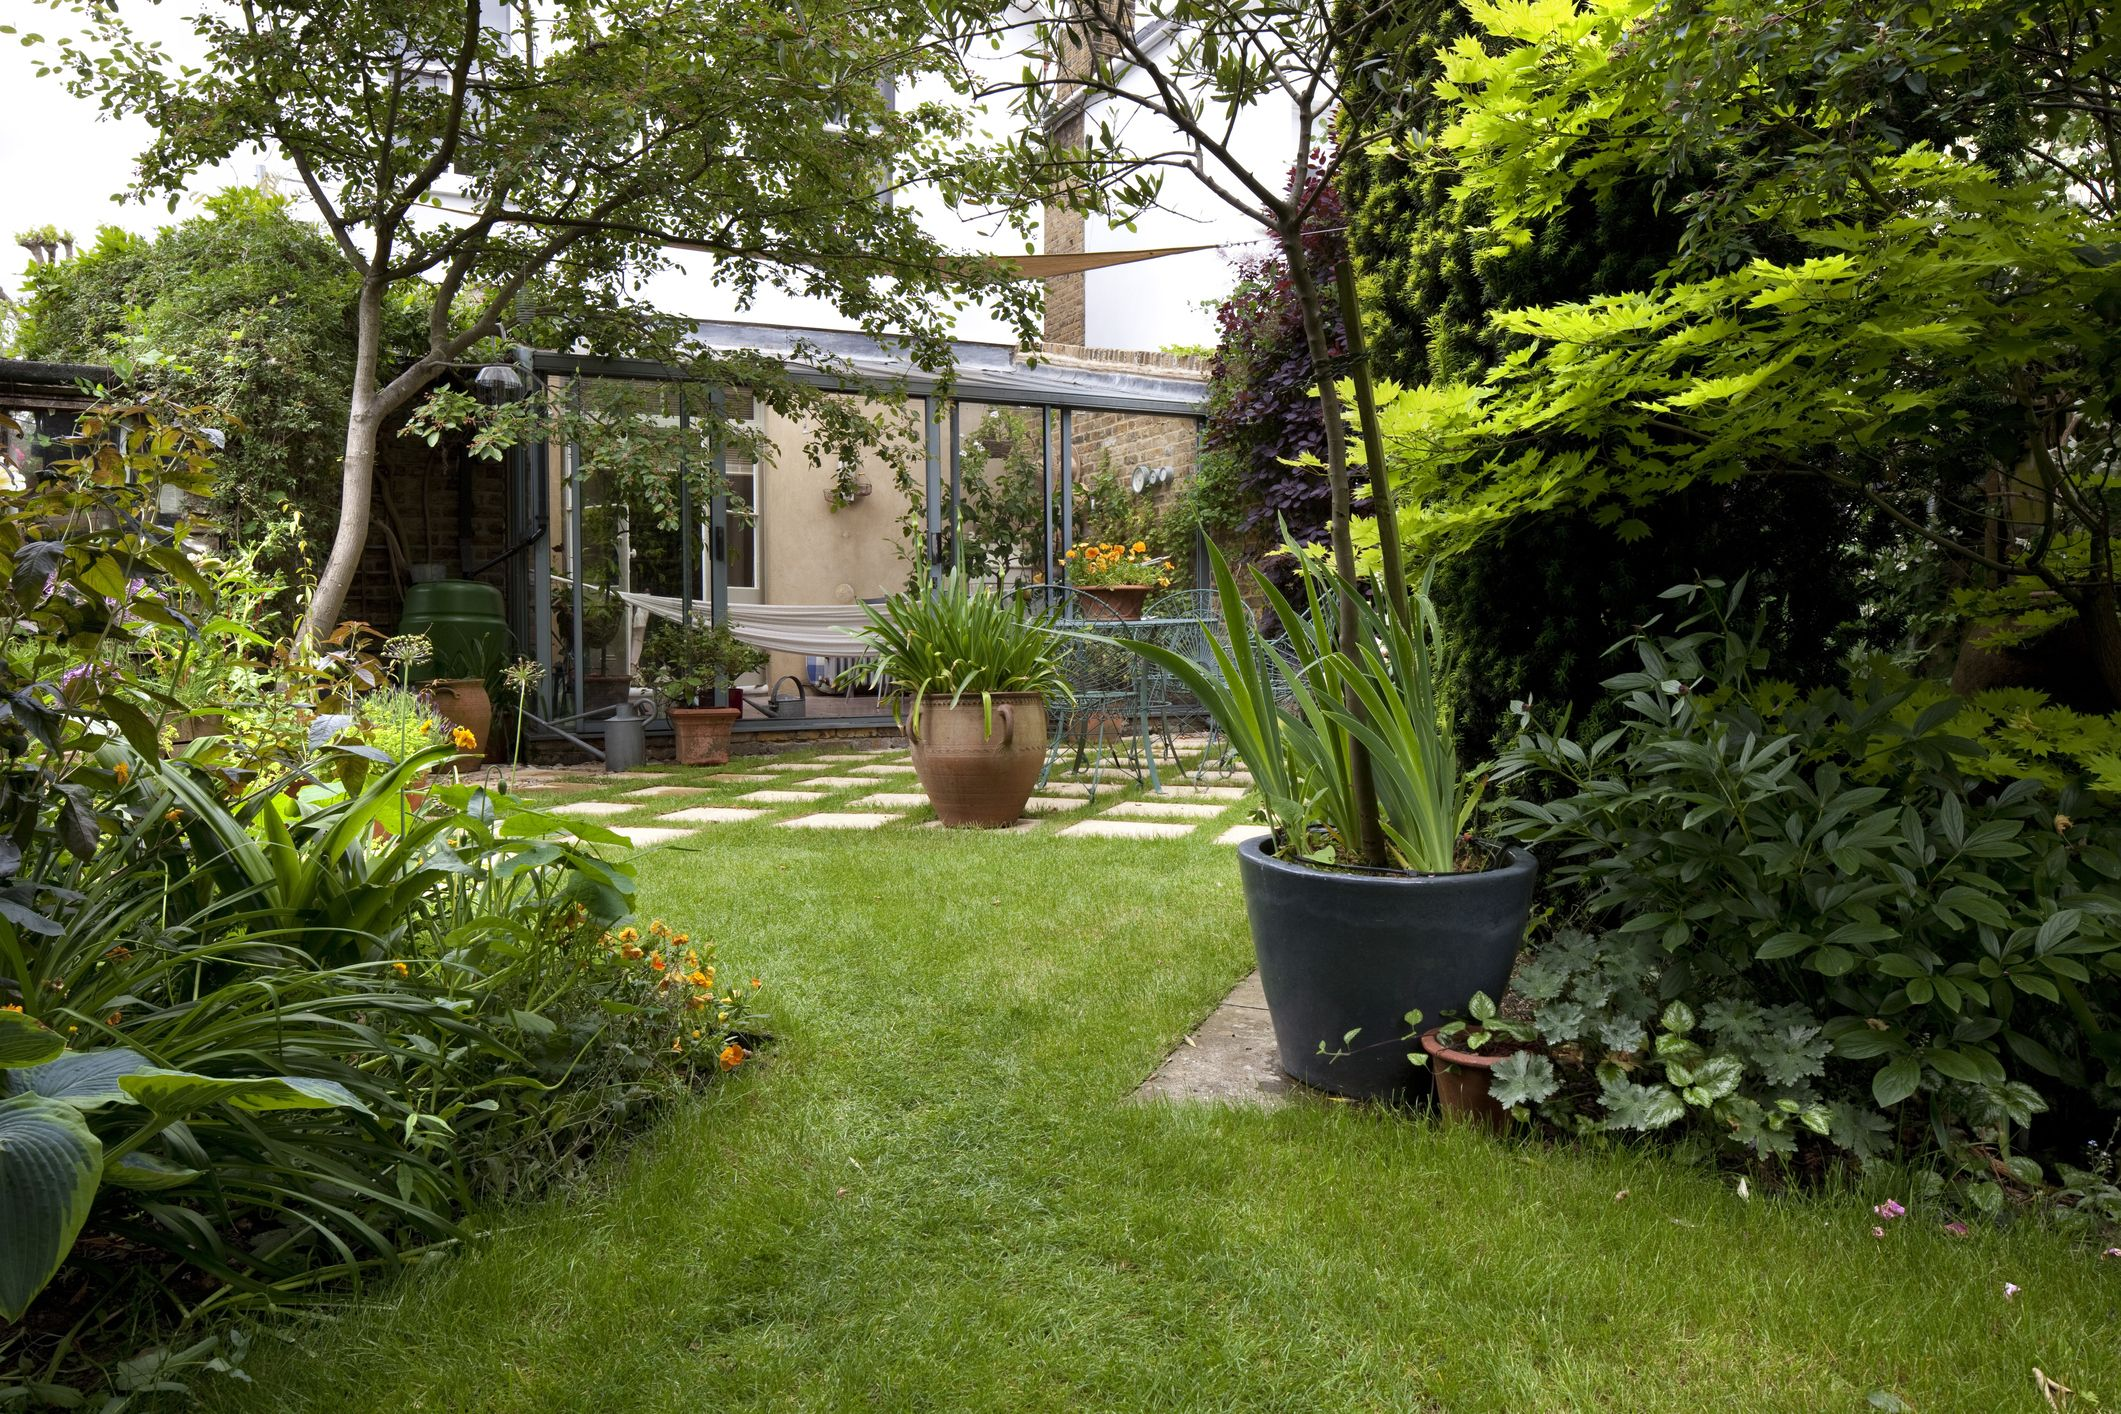 Suburban garden and lawn Kingston Upon Thames England UK & Top 10 Garden Design Ideas To Make The Best Of Your Outdoor Space